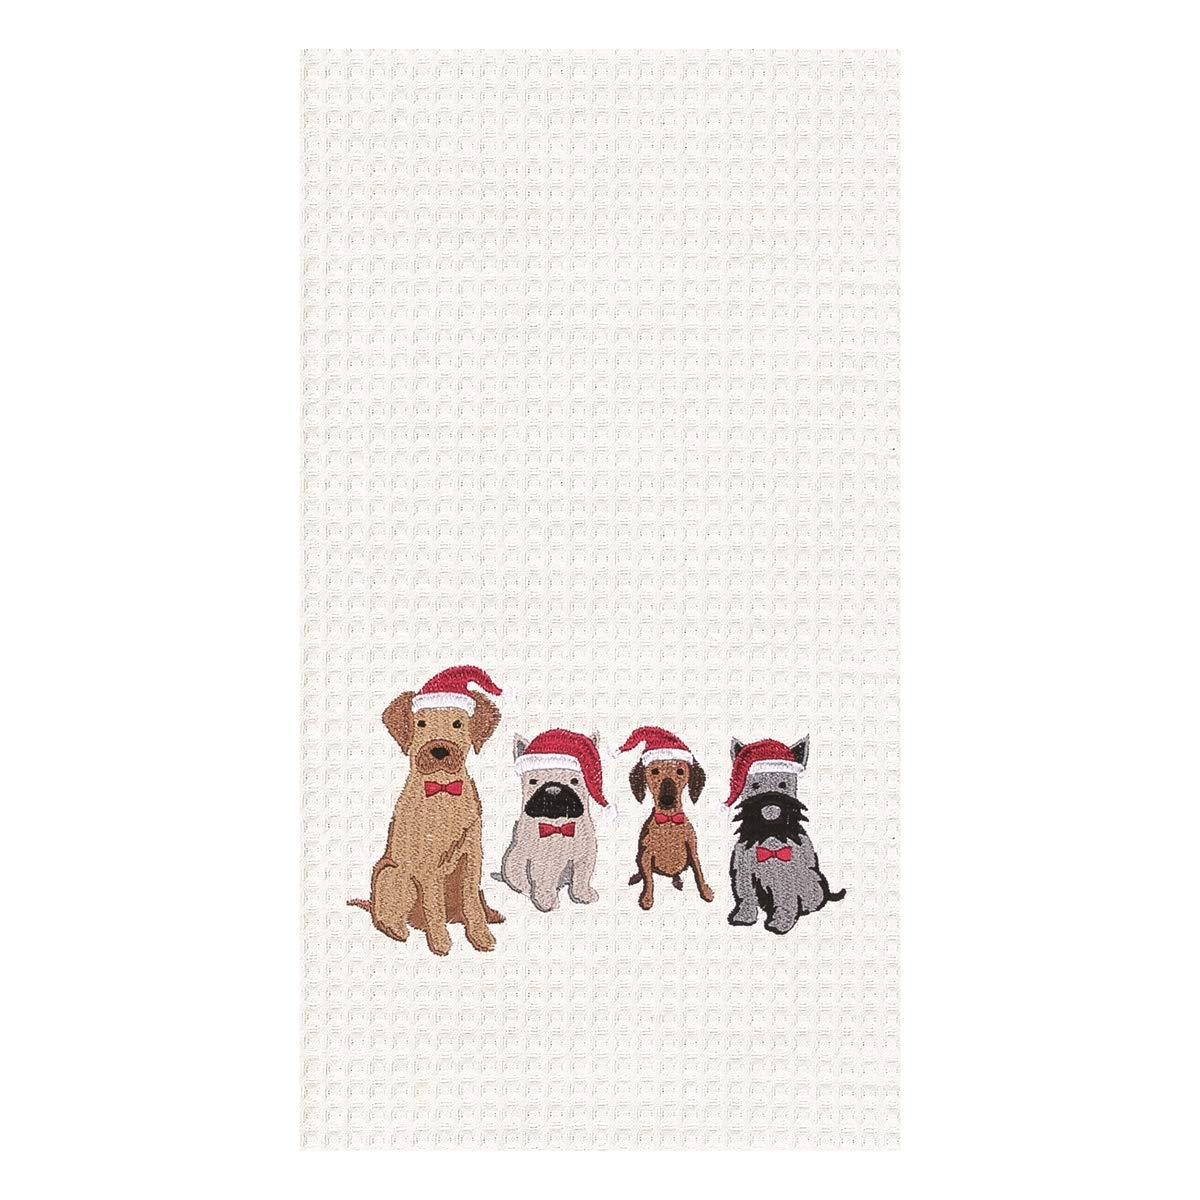 Dog Santa Hats 86100634 18 Inches x 27 Inches C/&F Waffle Weave Embroidered Dishtowel